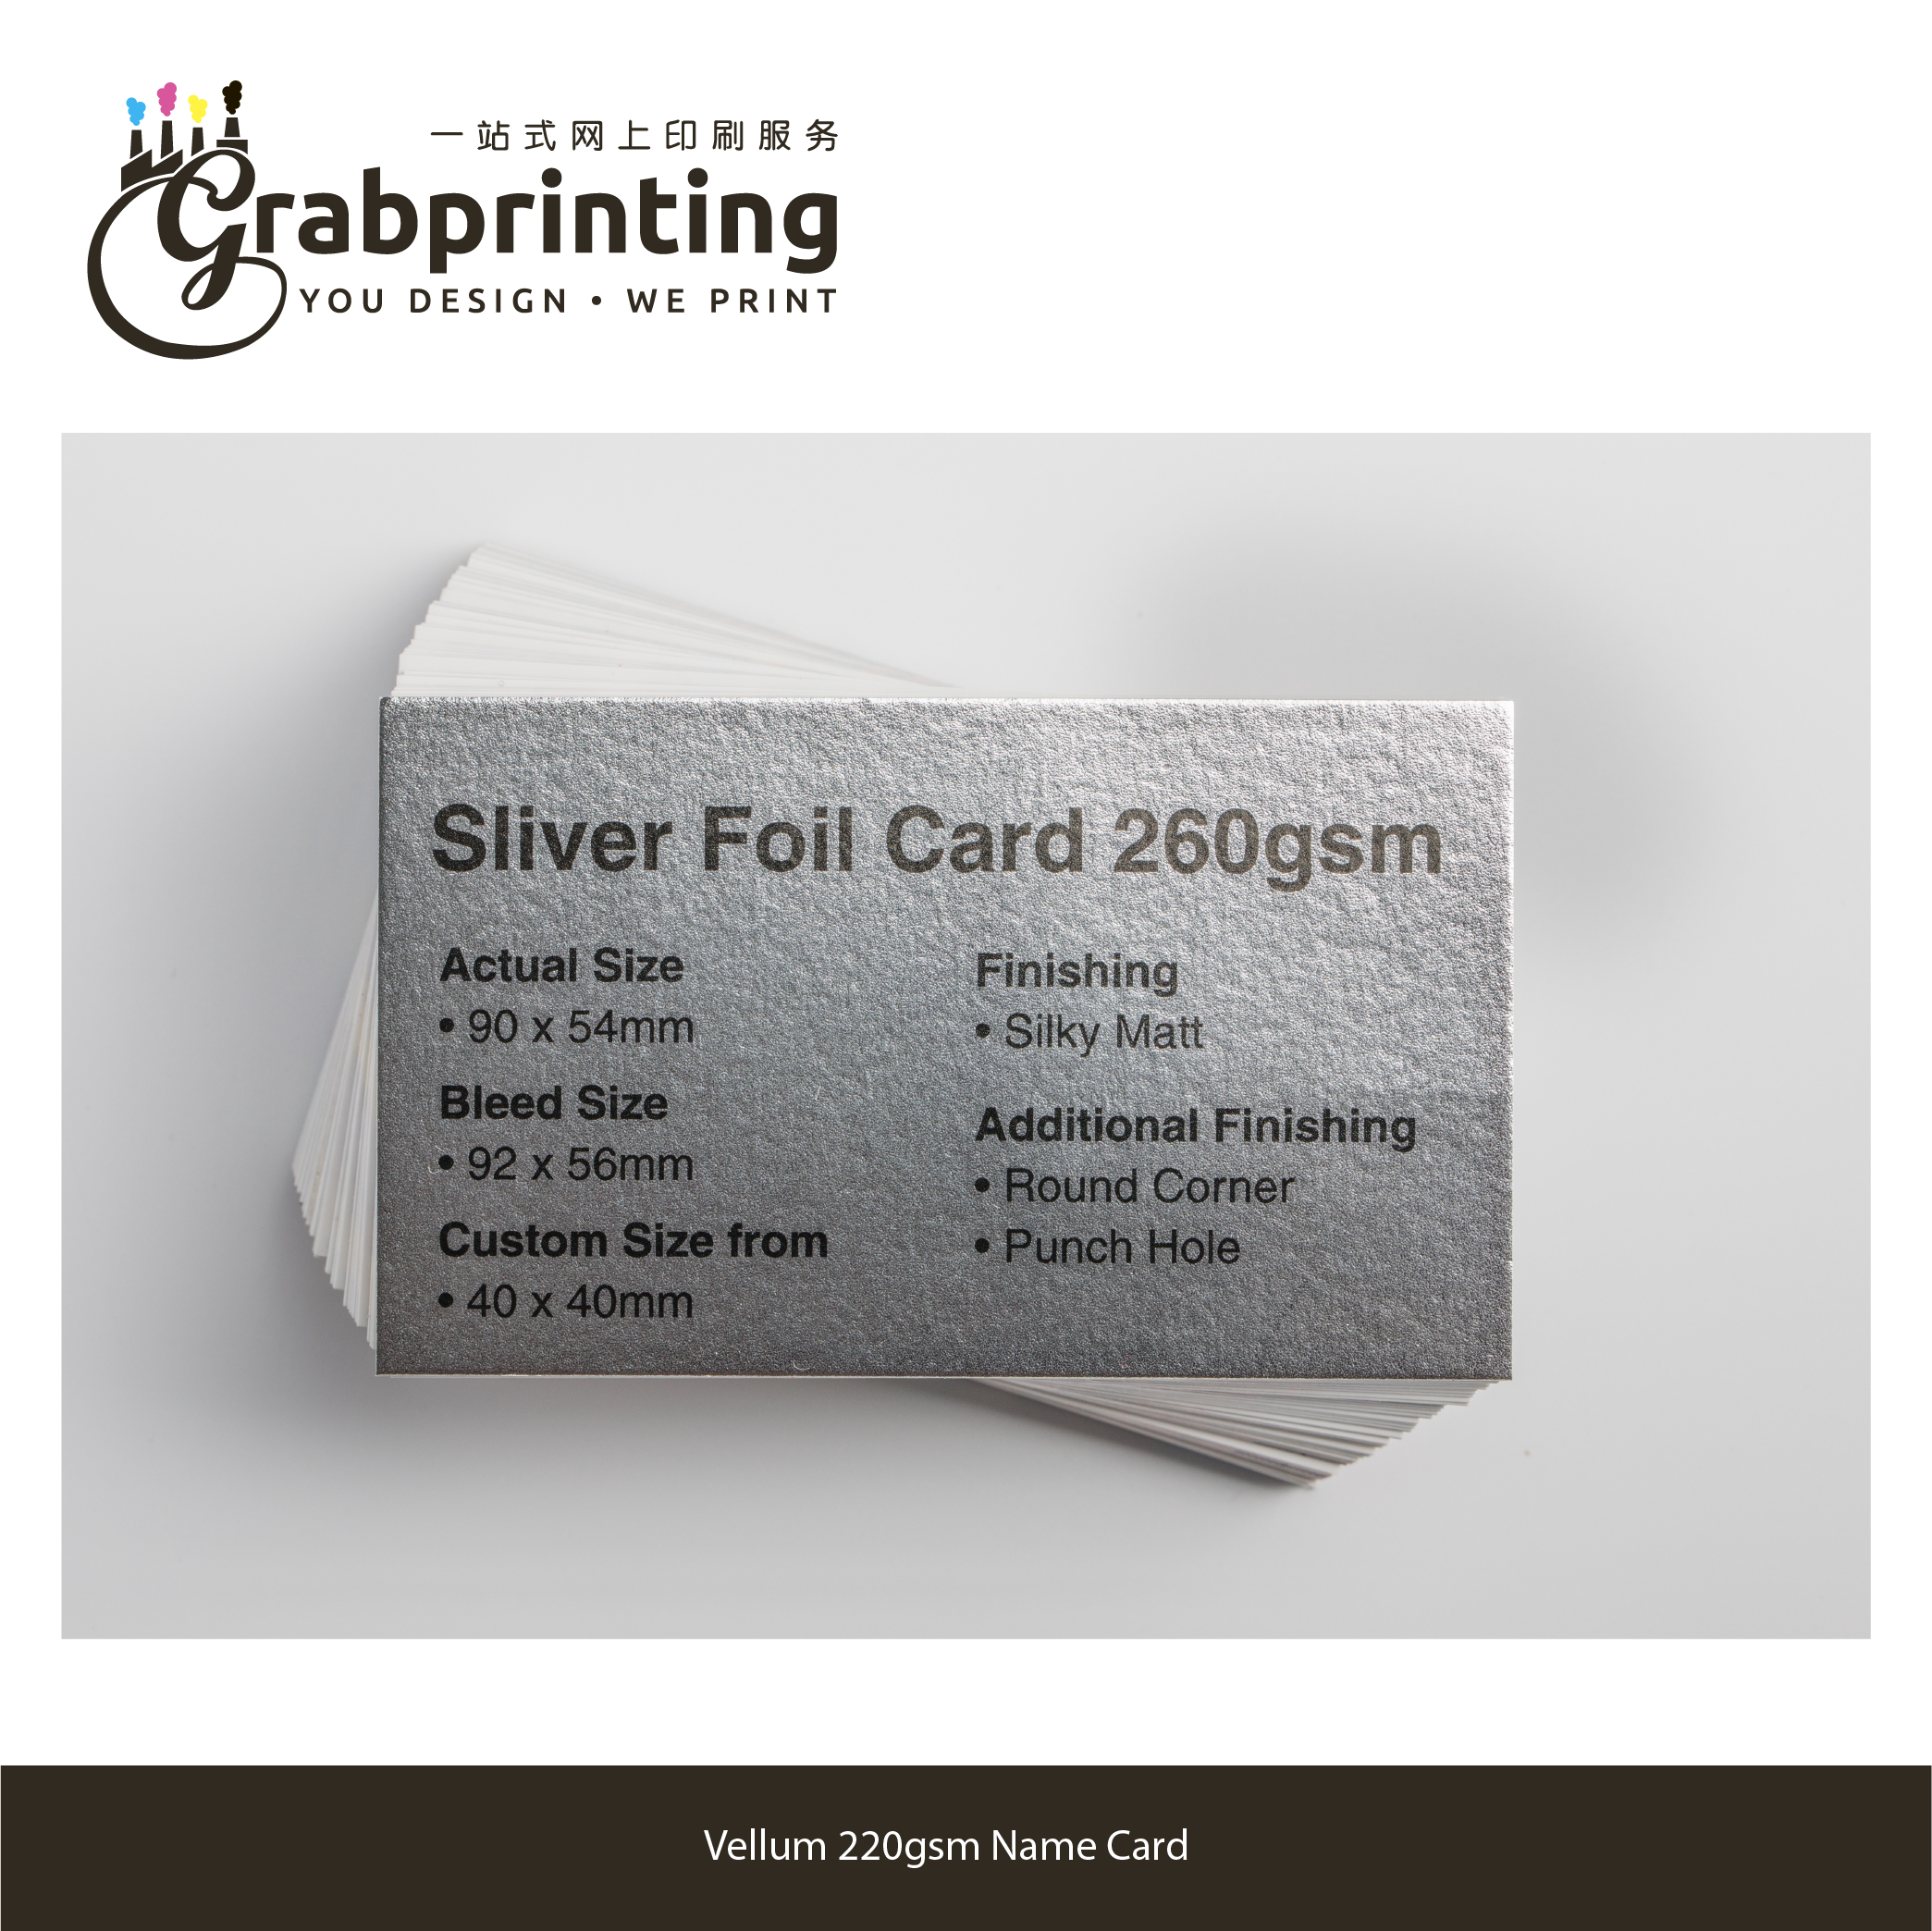 name cards Name Card (23 materials to choose from) grabprinting 41 Sliver Foil Card 260gsm 501px 501px